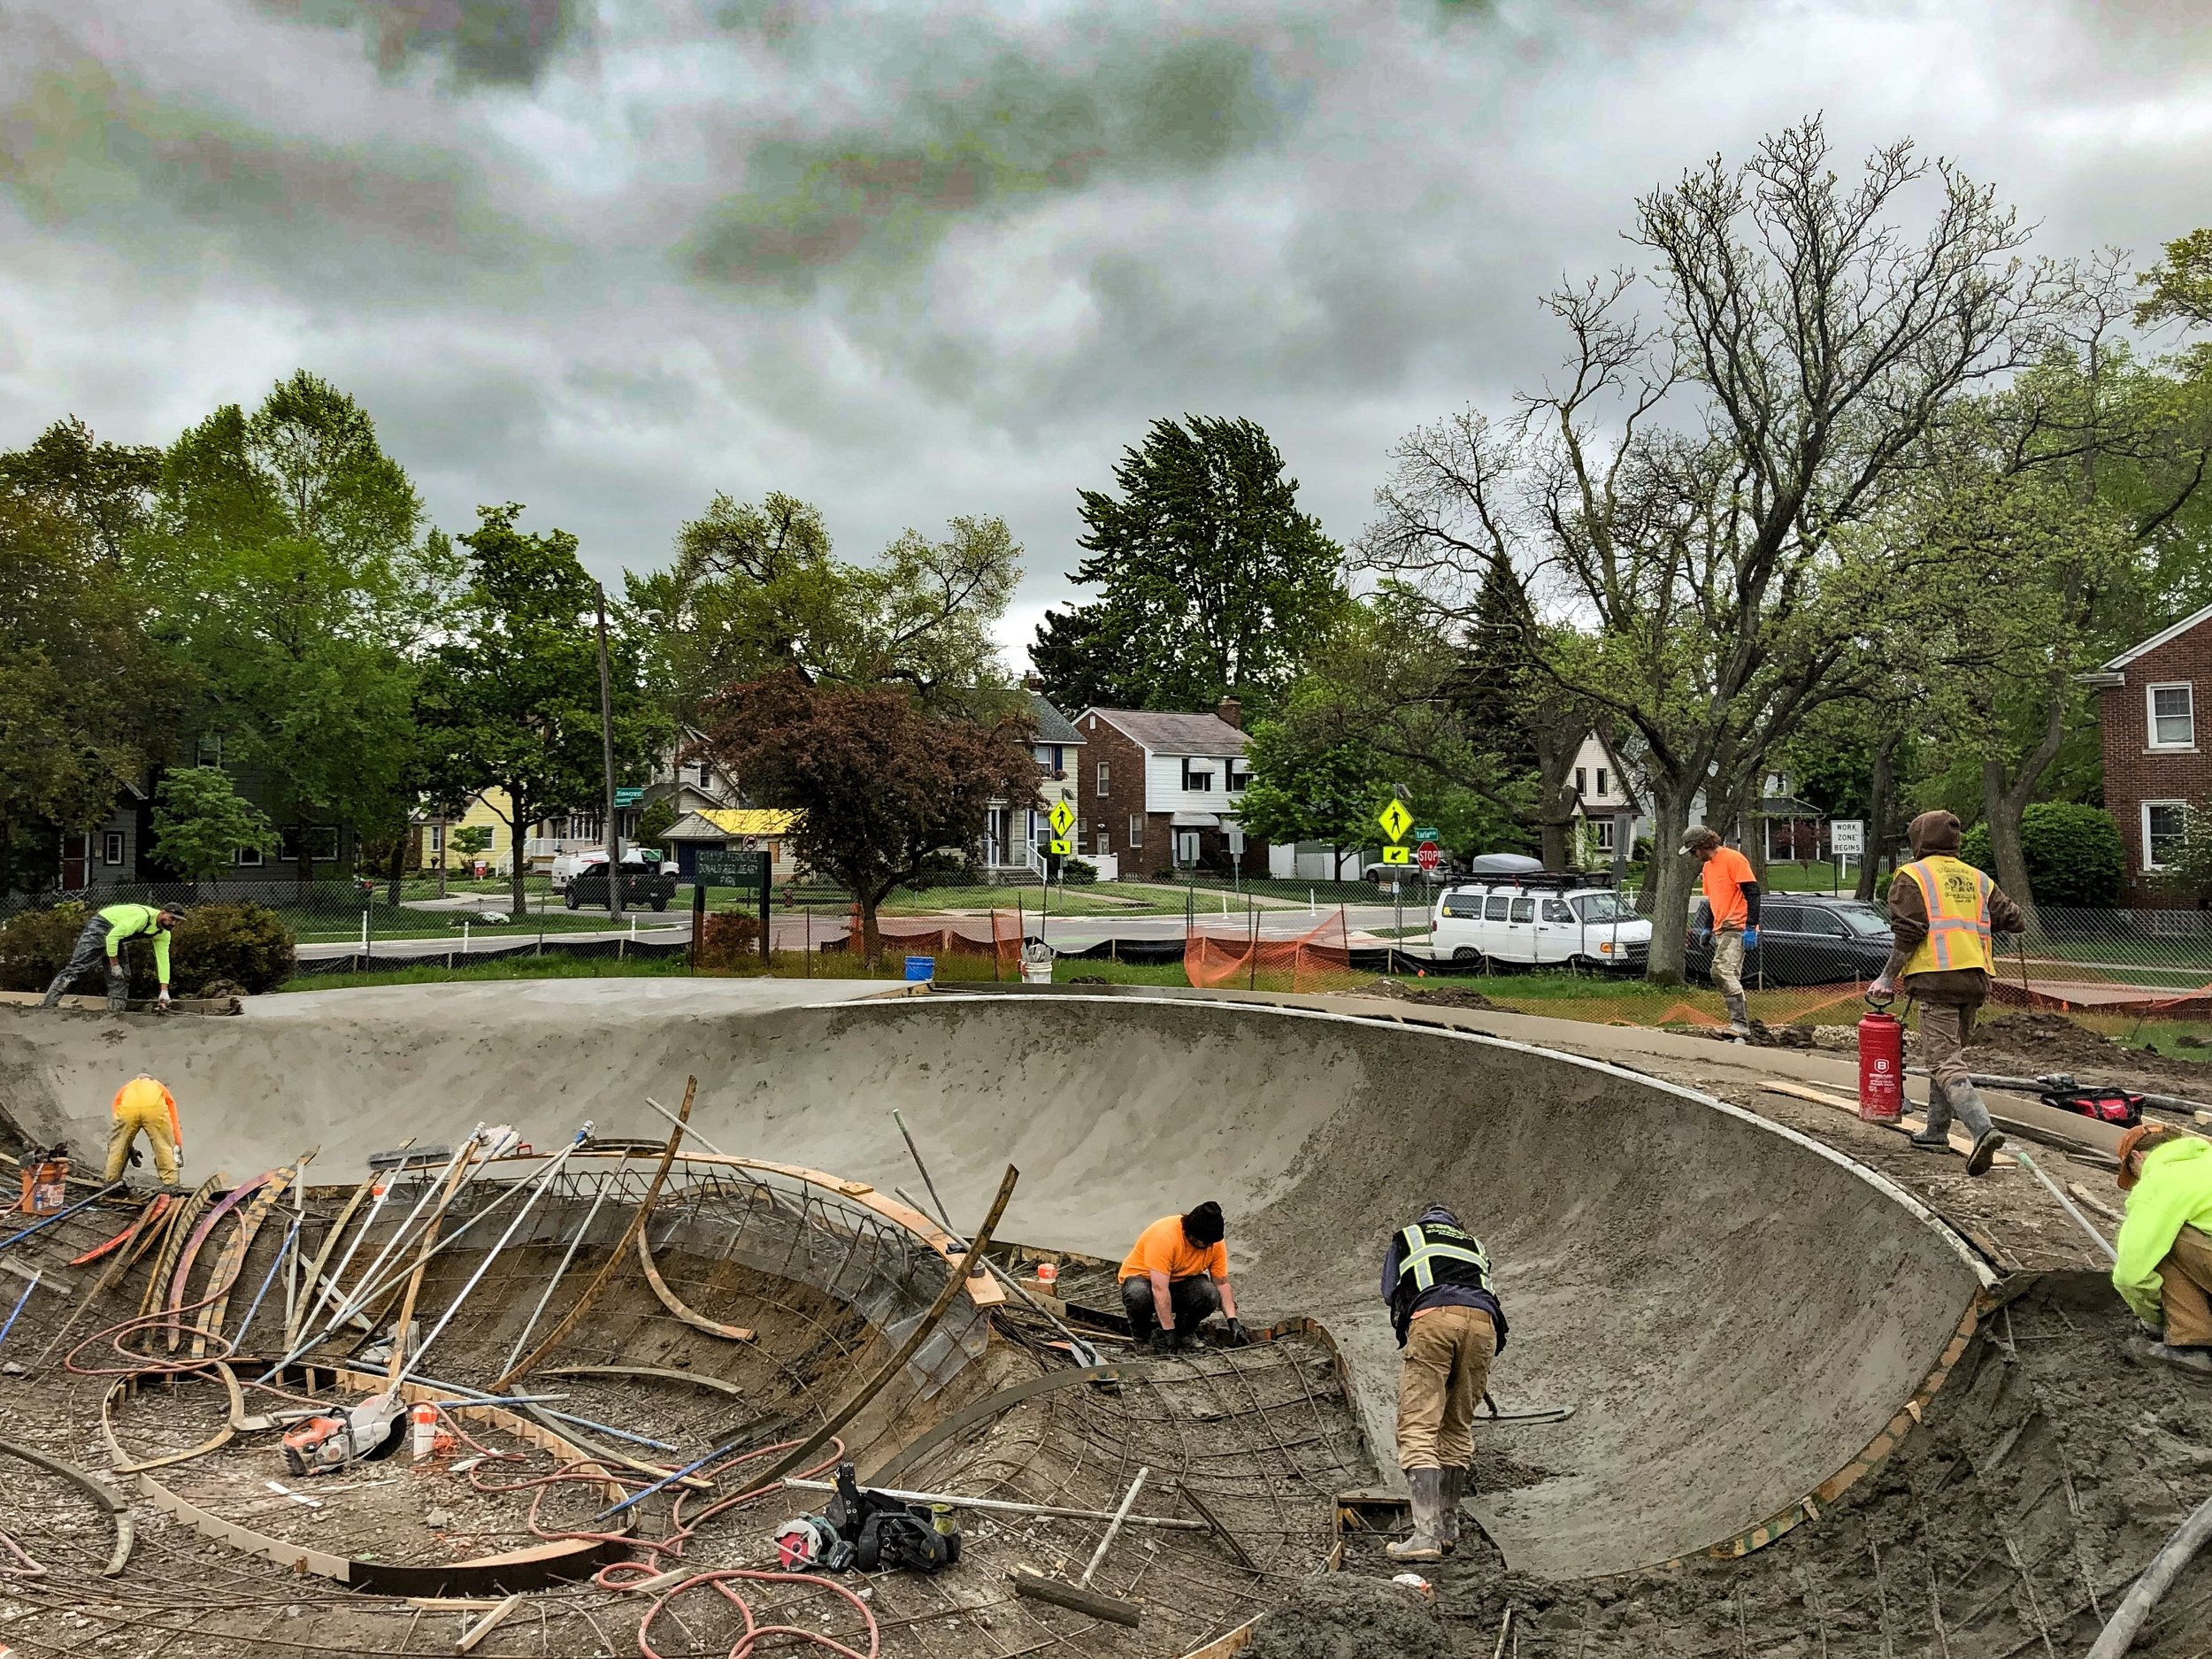 Shotcrete action 💨 in Ferndale, Michigan 💯